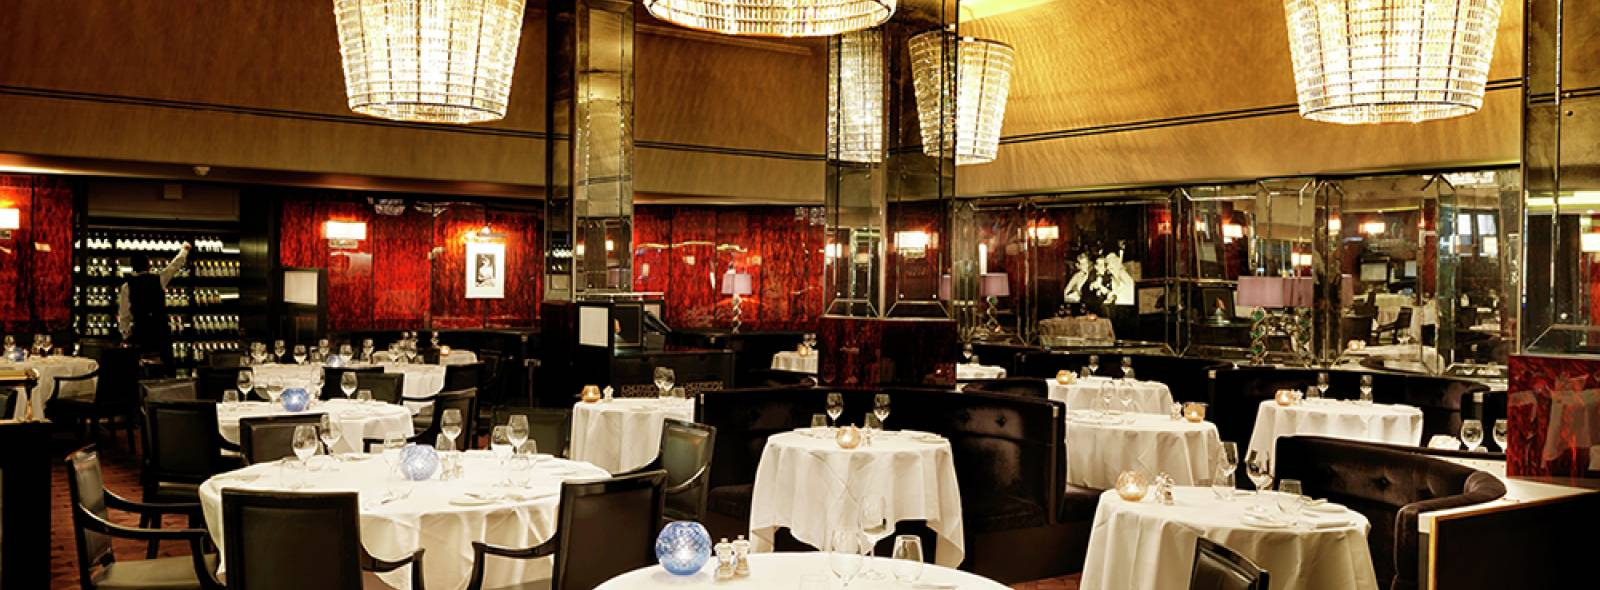 savoy grill interior home page carousel final